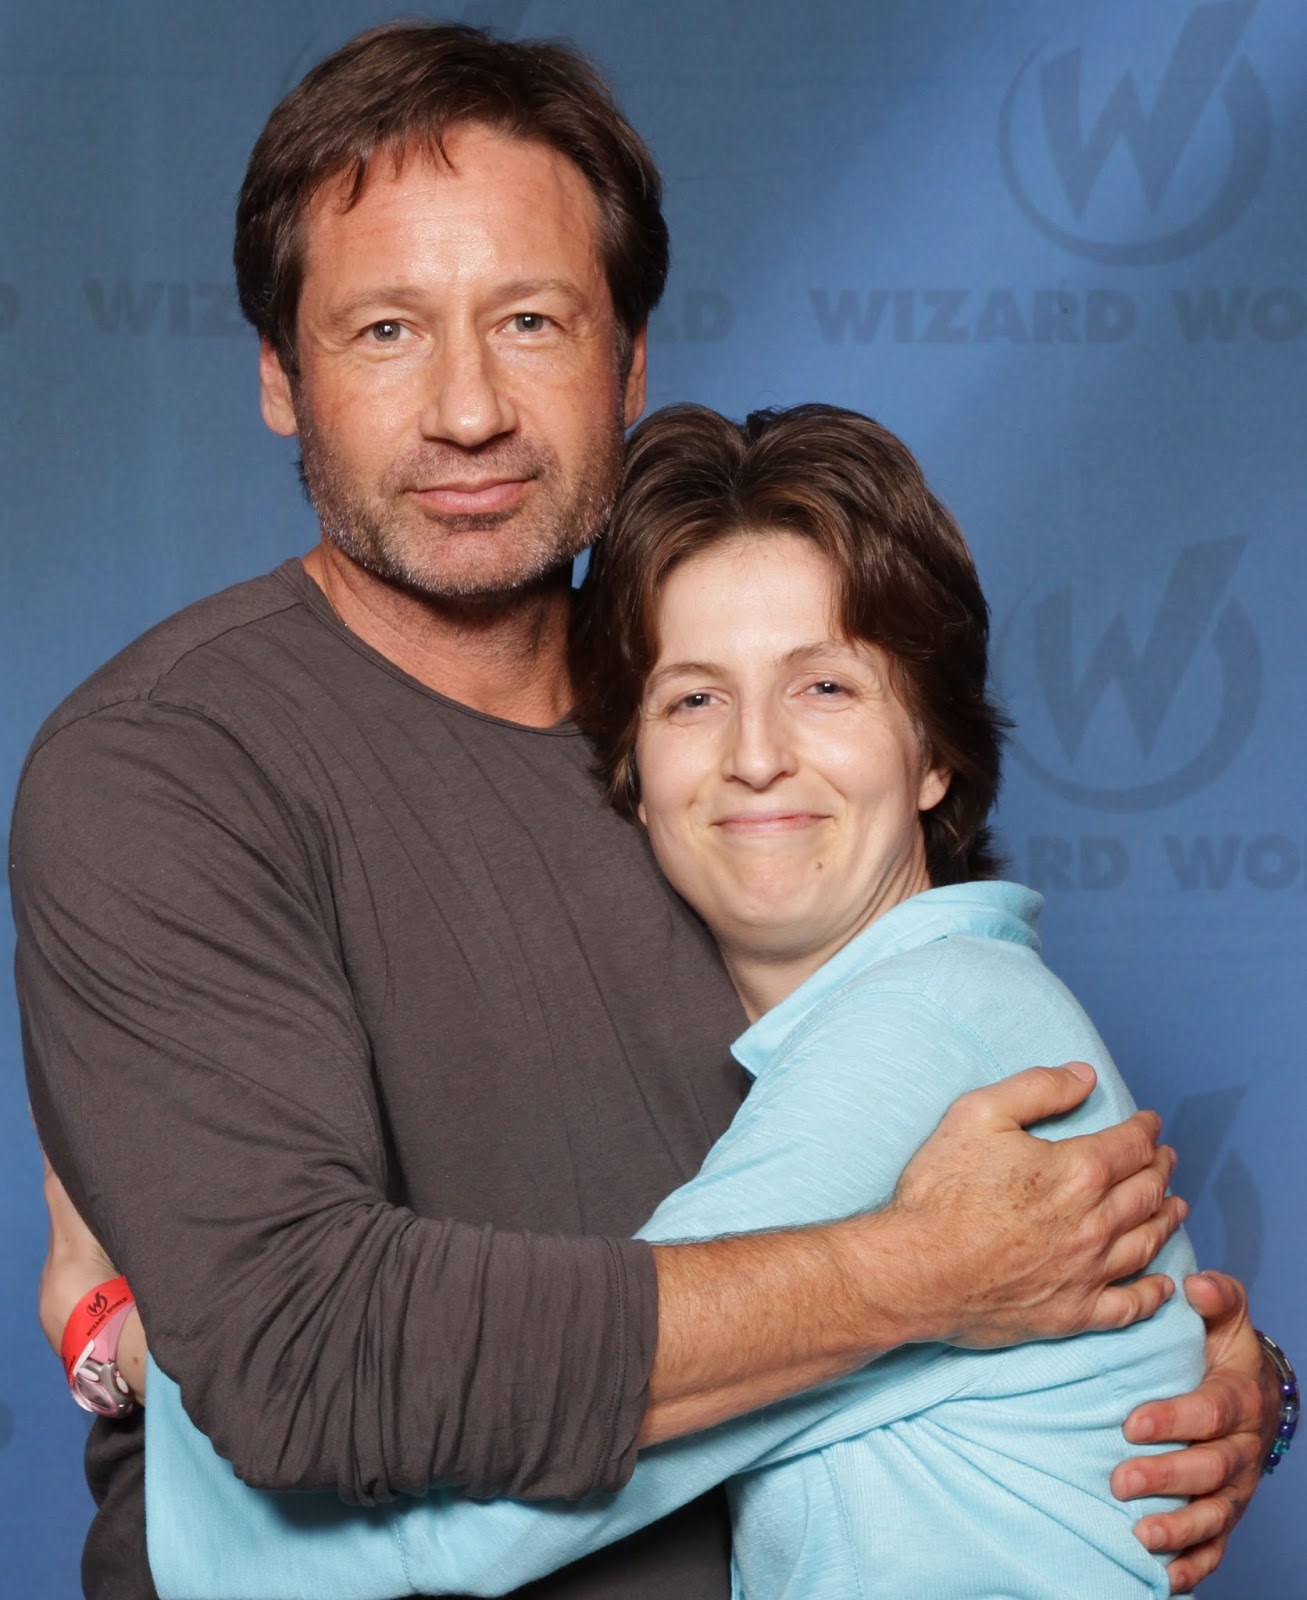 Rebeccas interests and life december 2015 my friends and i took a spontaneous day trip to wizard world pittsburgh to meet david duchovny mulder and mitch pileggi skinner from the x files kristyandbryce Images